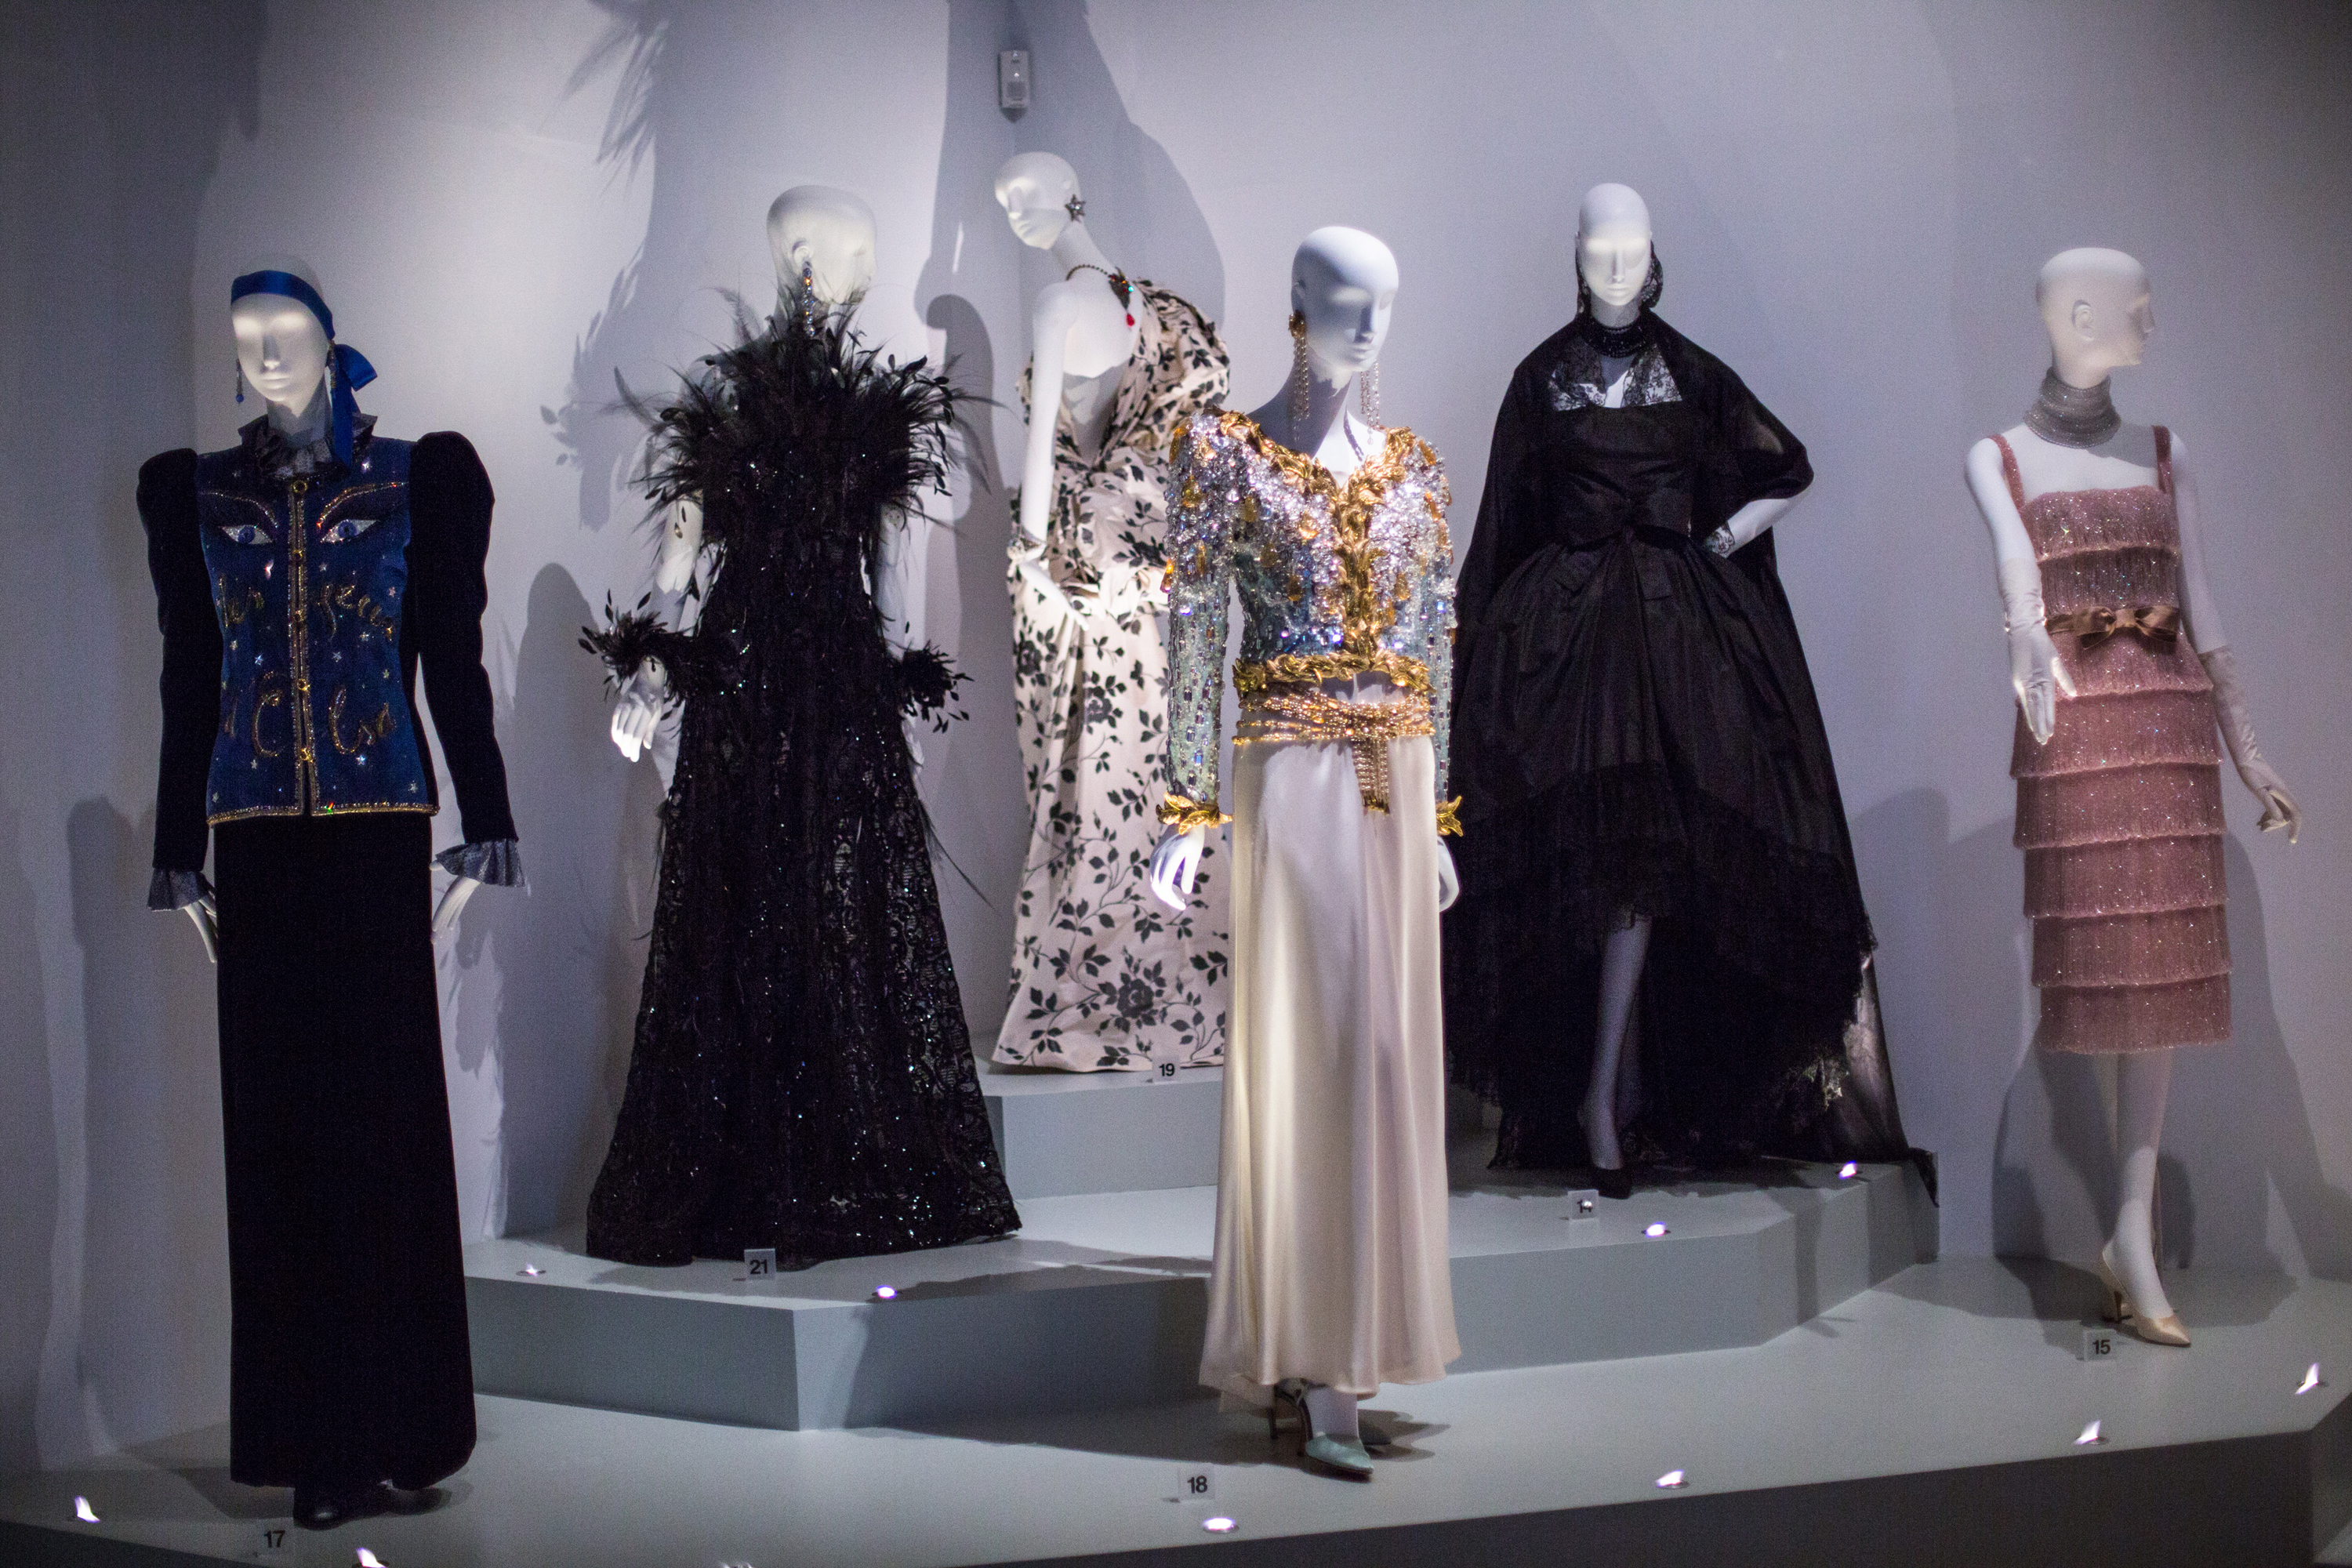 Yves Saint Laurent, Style is Eternal exhibition display at the Bowes Museum  in Durham